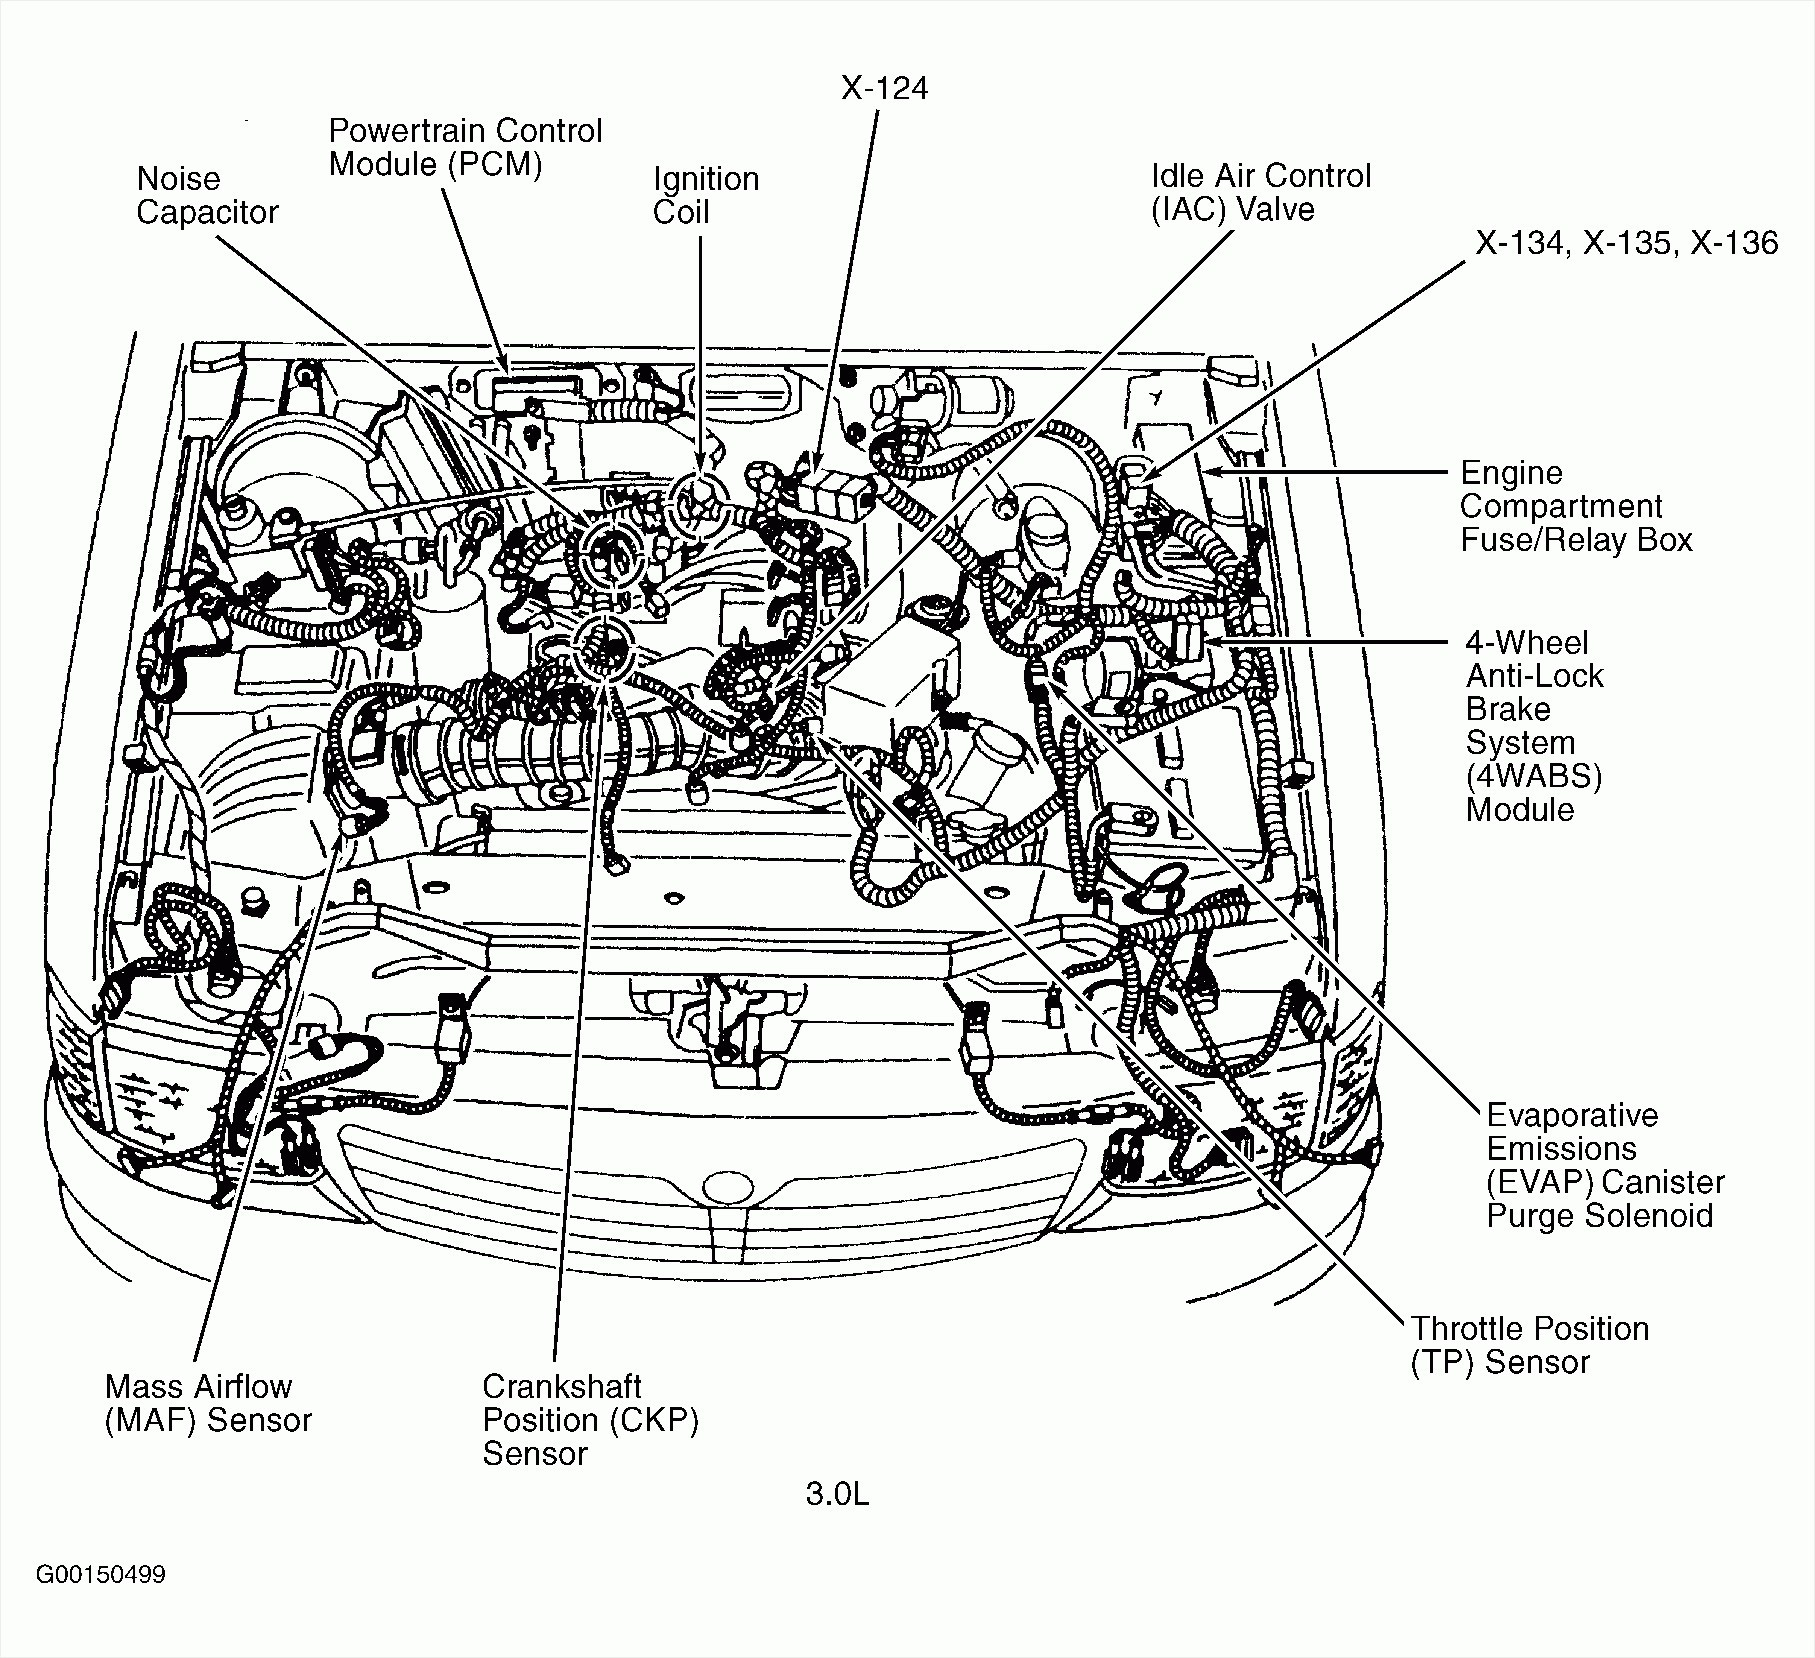 2000 chevy lumina engine diagram read all wiring diagram